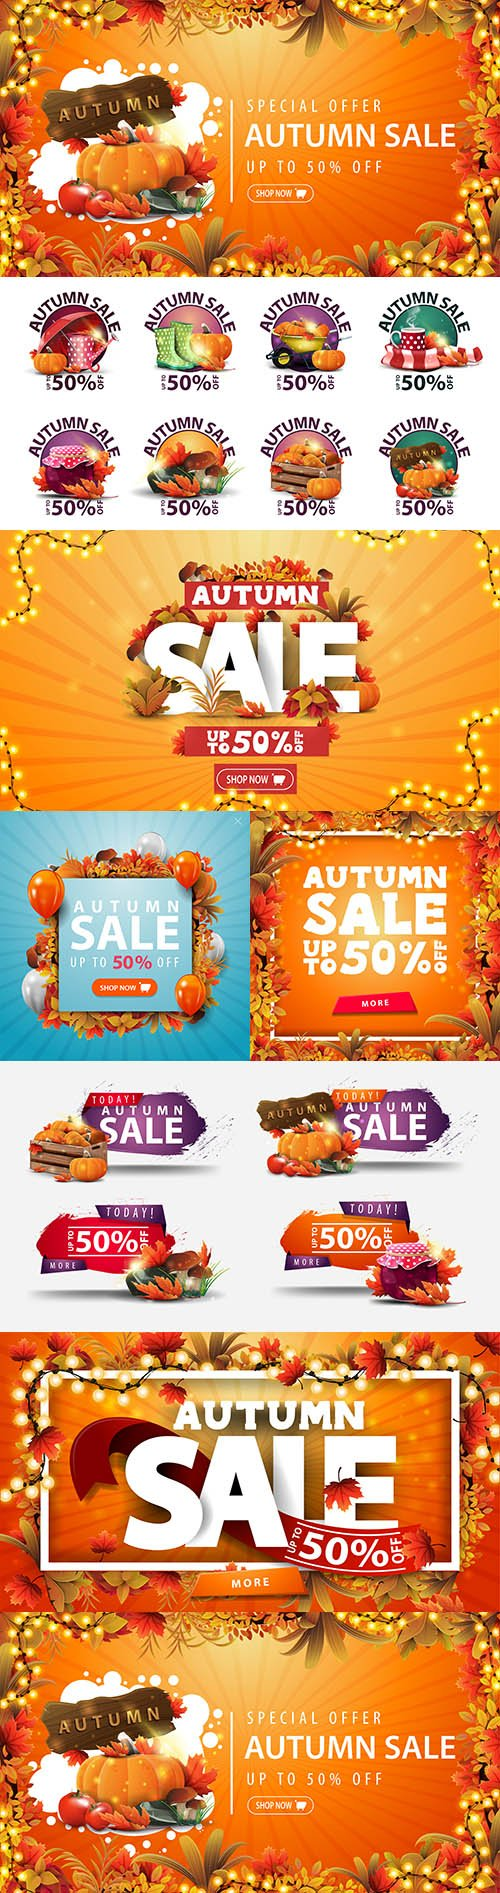 Autumn sale banner leaves around and from bright garland